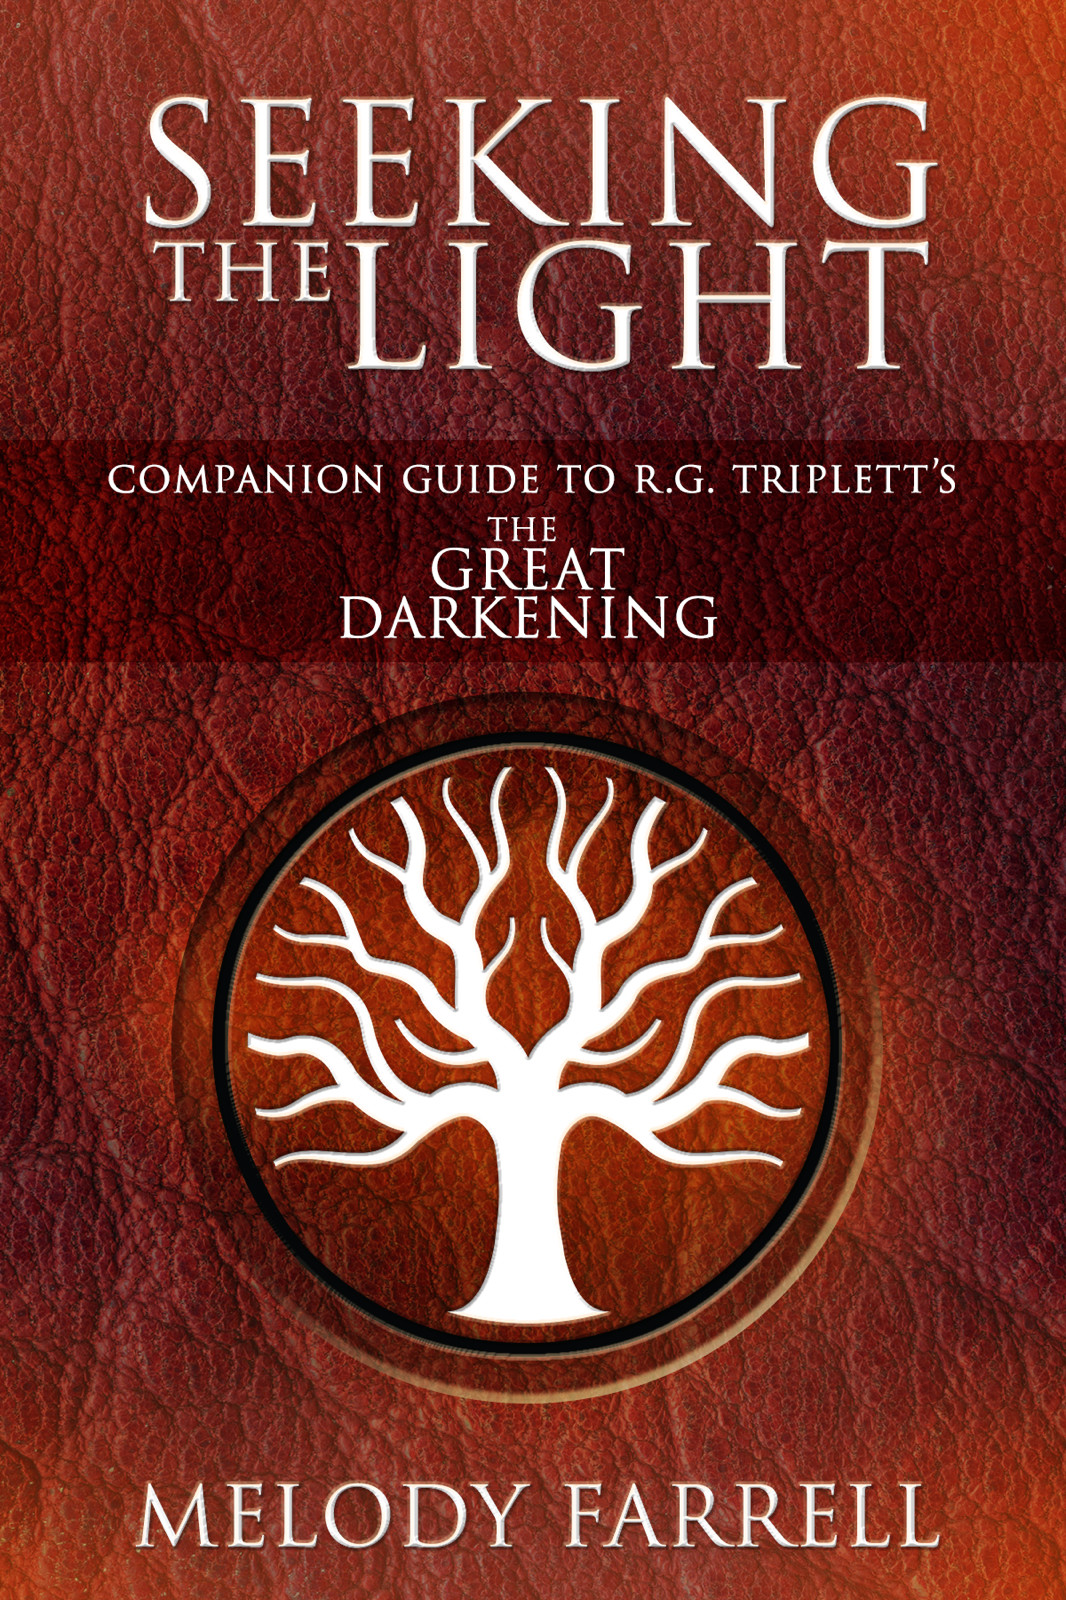 Seeking The Light - Editorial Companion Guide - ening - Epic of Haven_ Book One - Melody Farrell.jpg